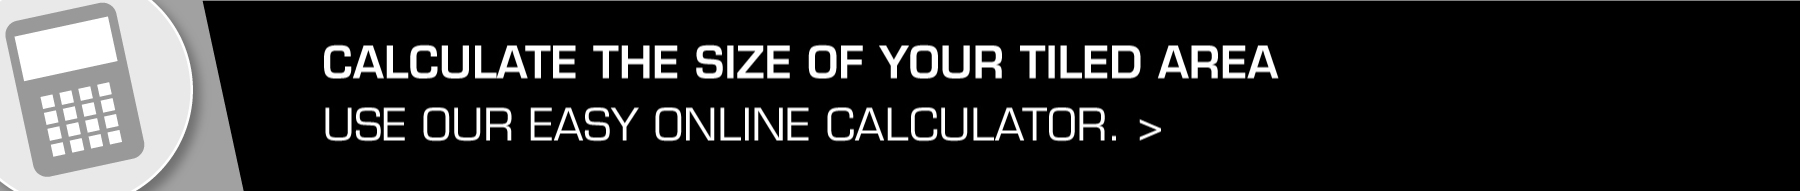 Calculate the size of your tiled area